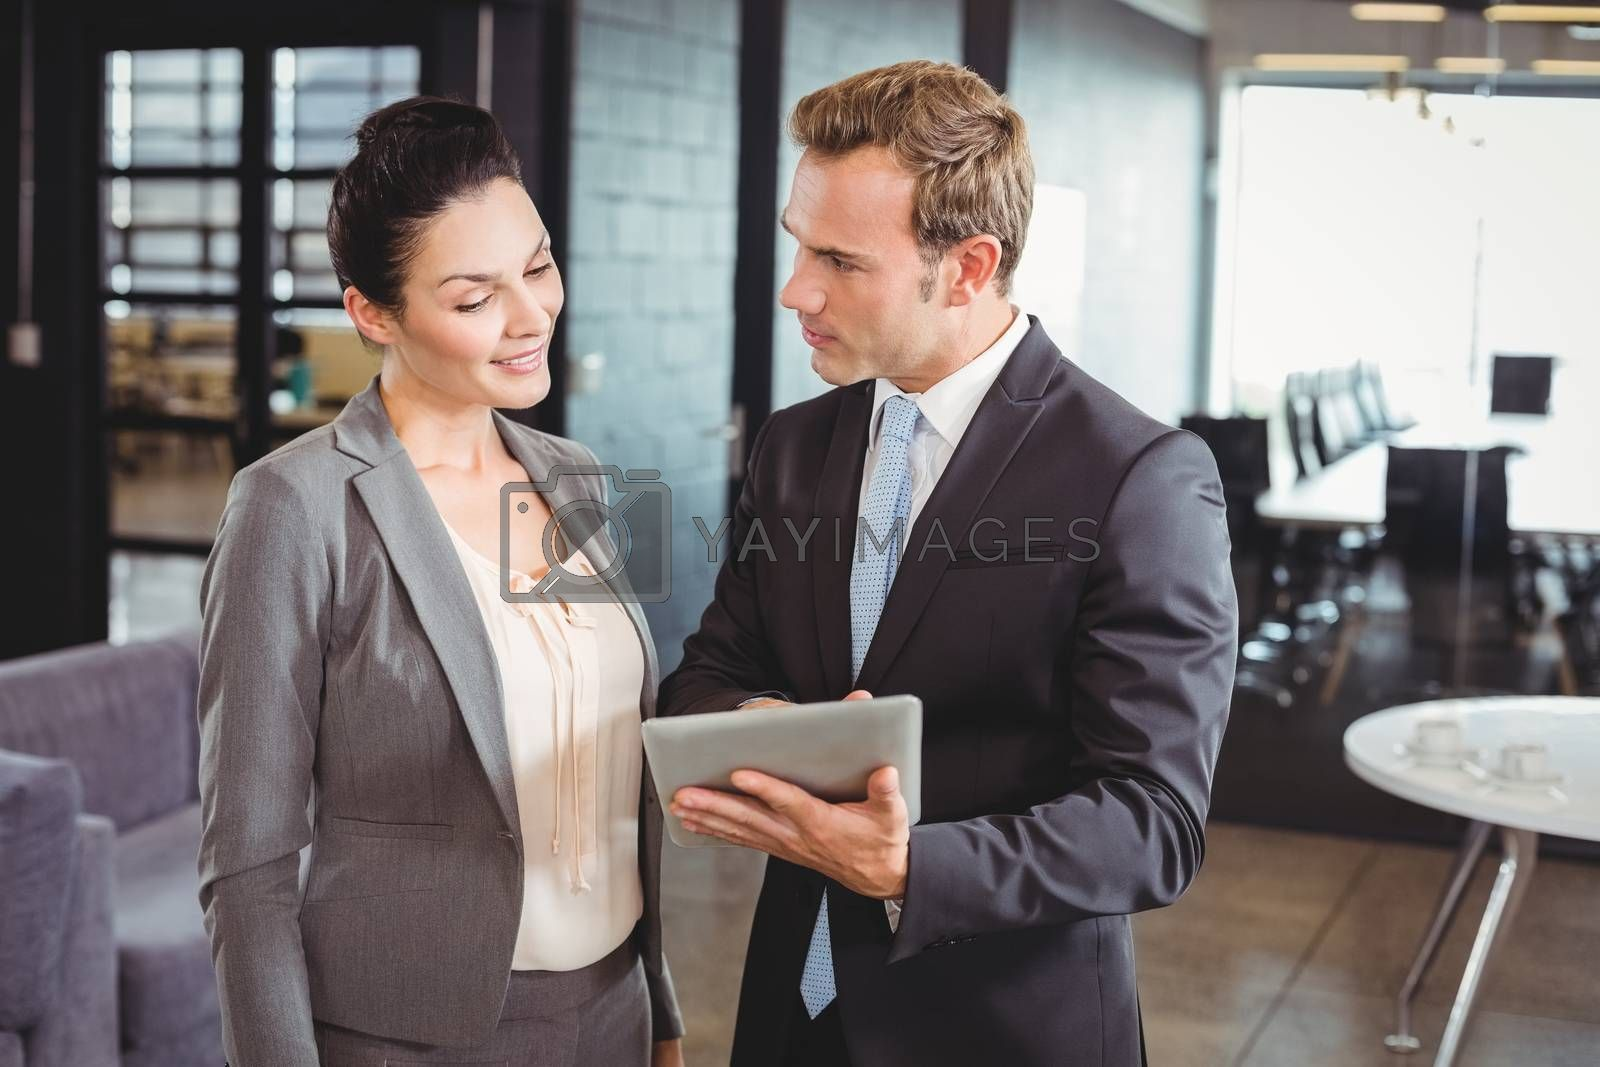 Businessman and businesswoman using digital tablet in office